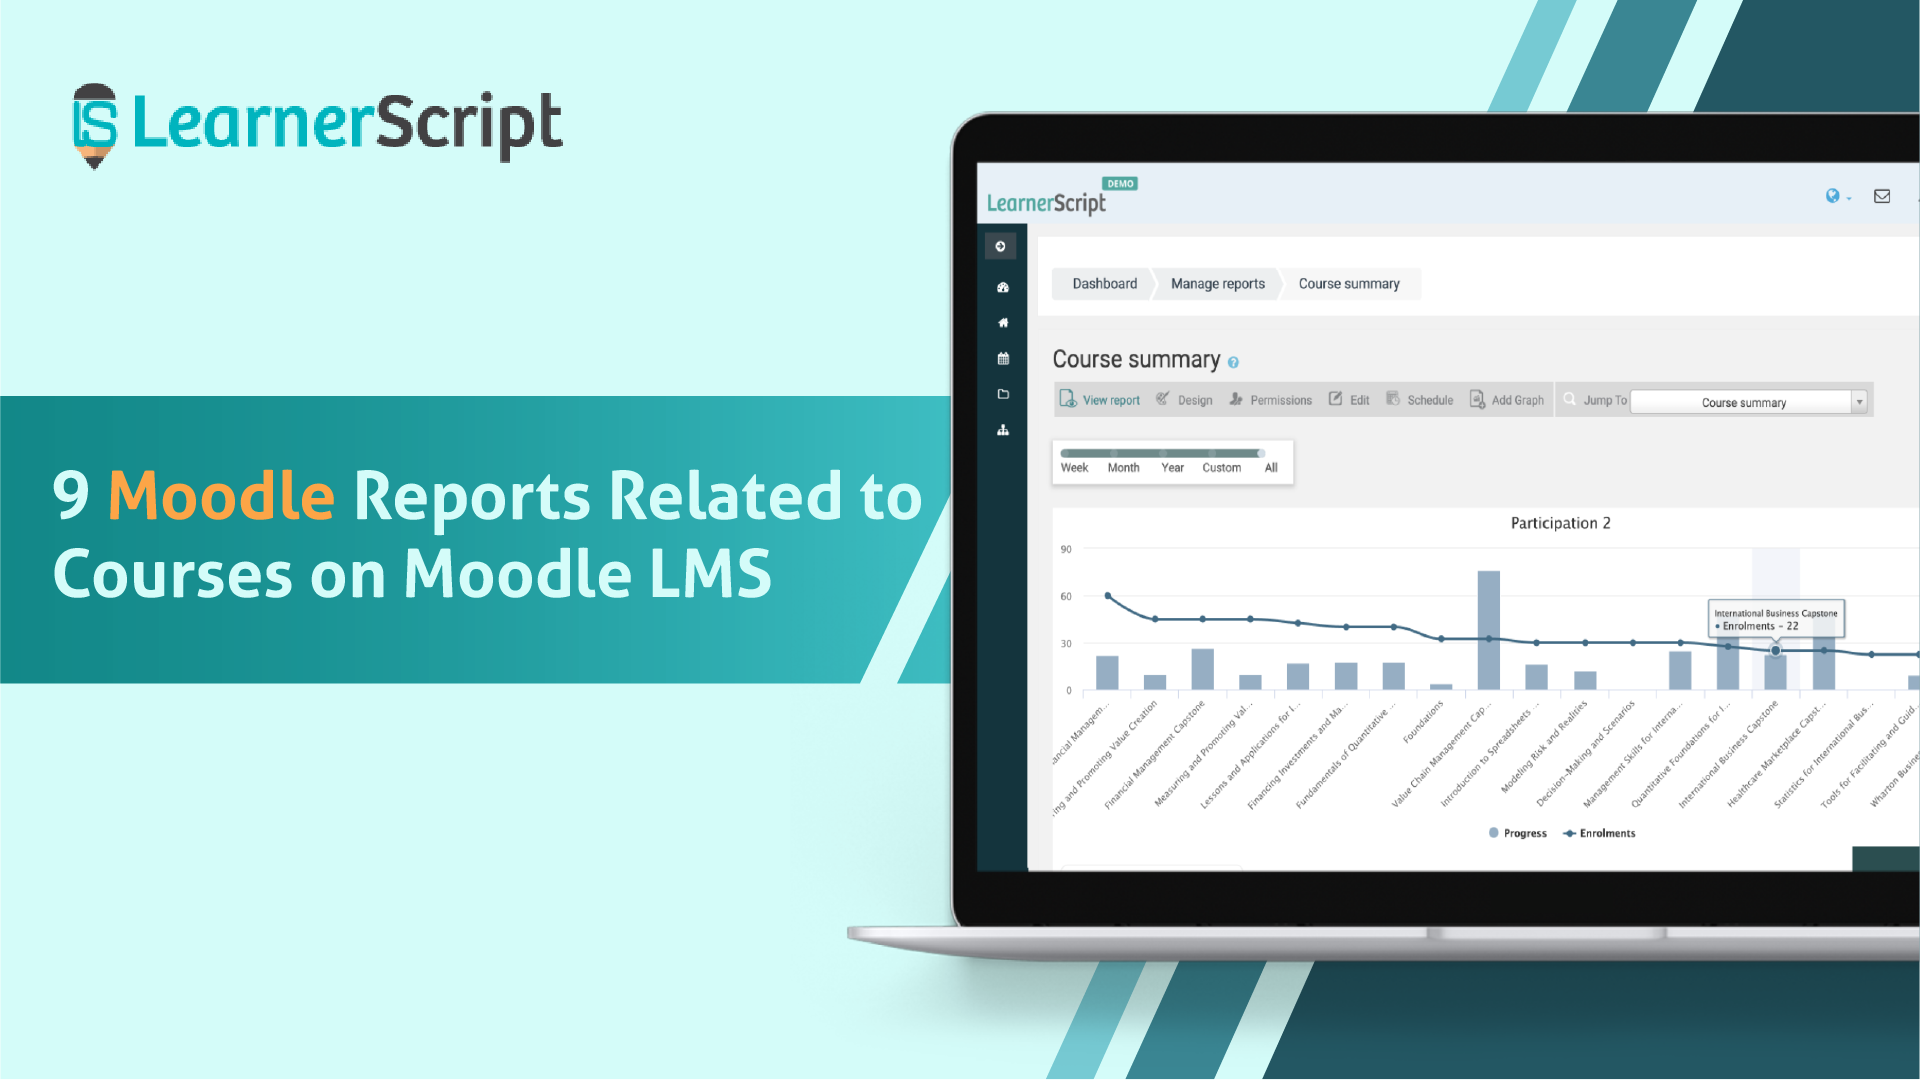 9 Moodle Reports Related to Courses on Moodle LMS